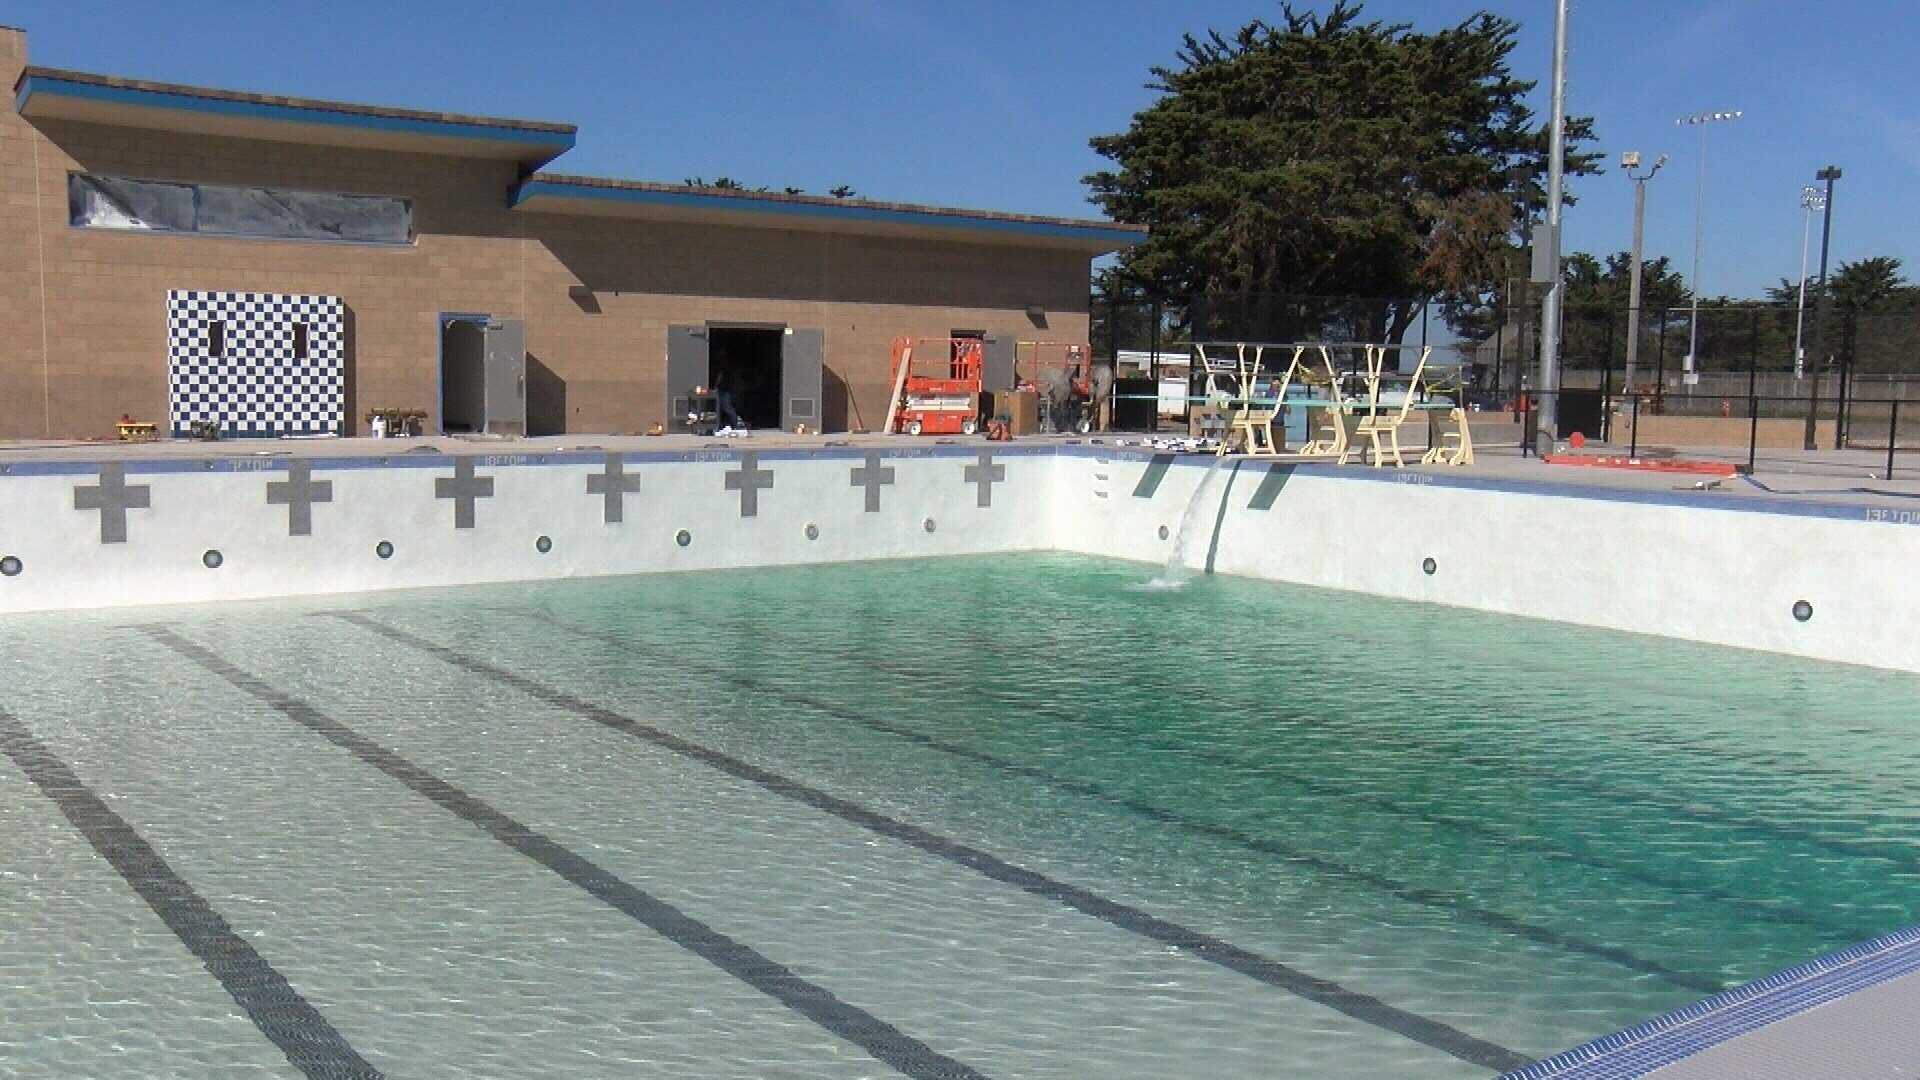 The new pool at Morro Bay High School was being filled with water Tuesday. (KSBY photo)